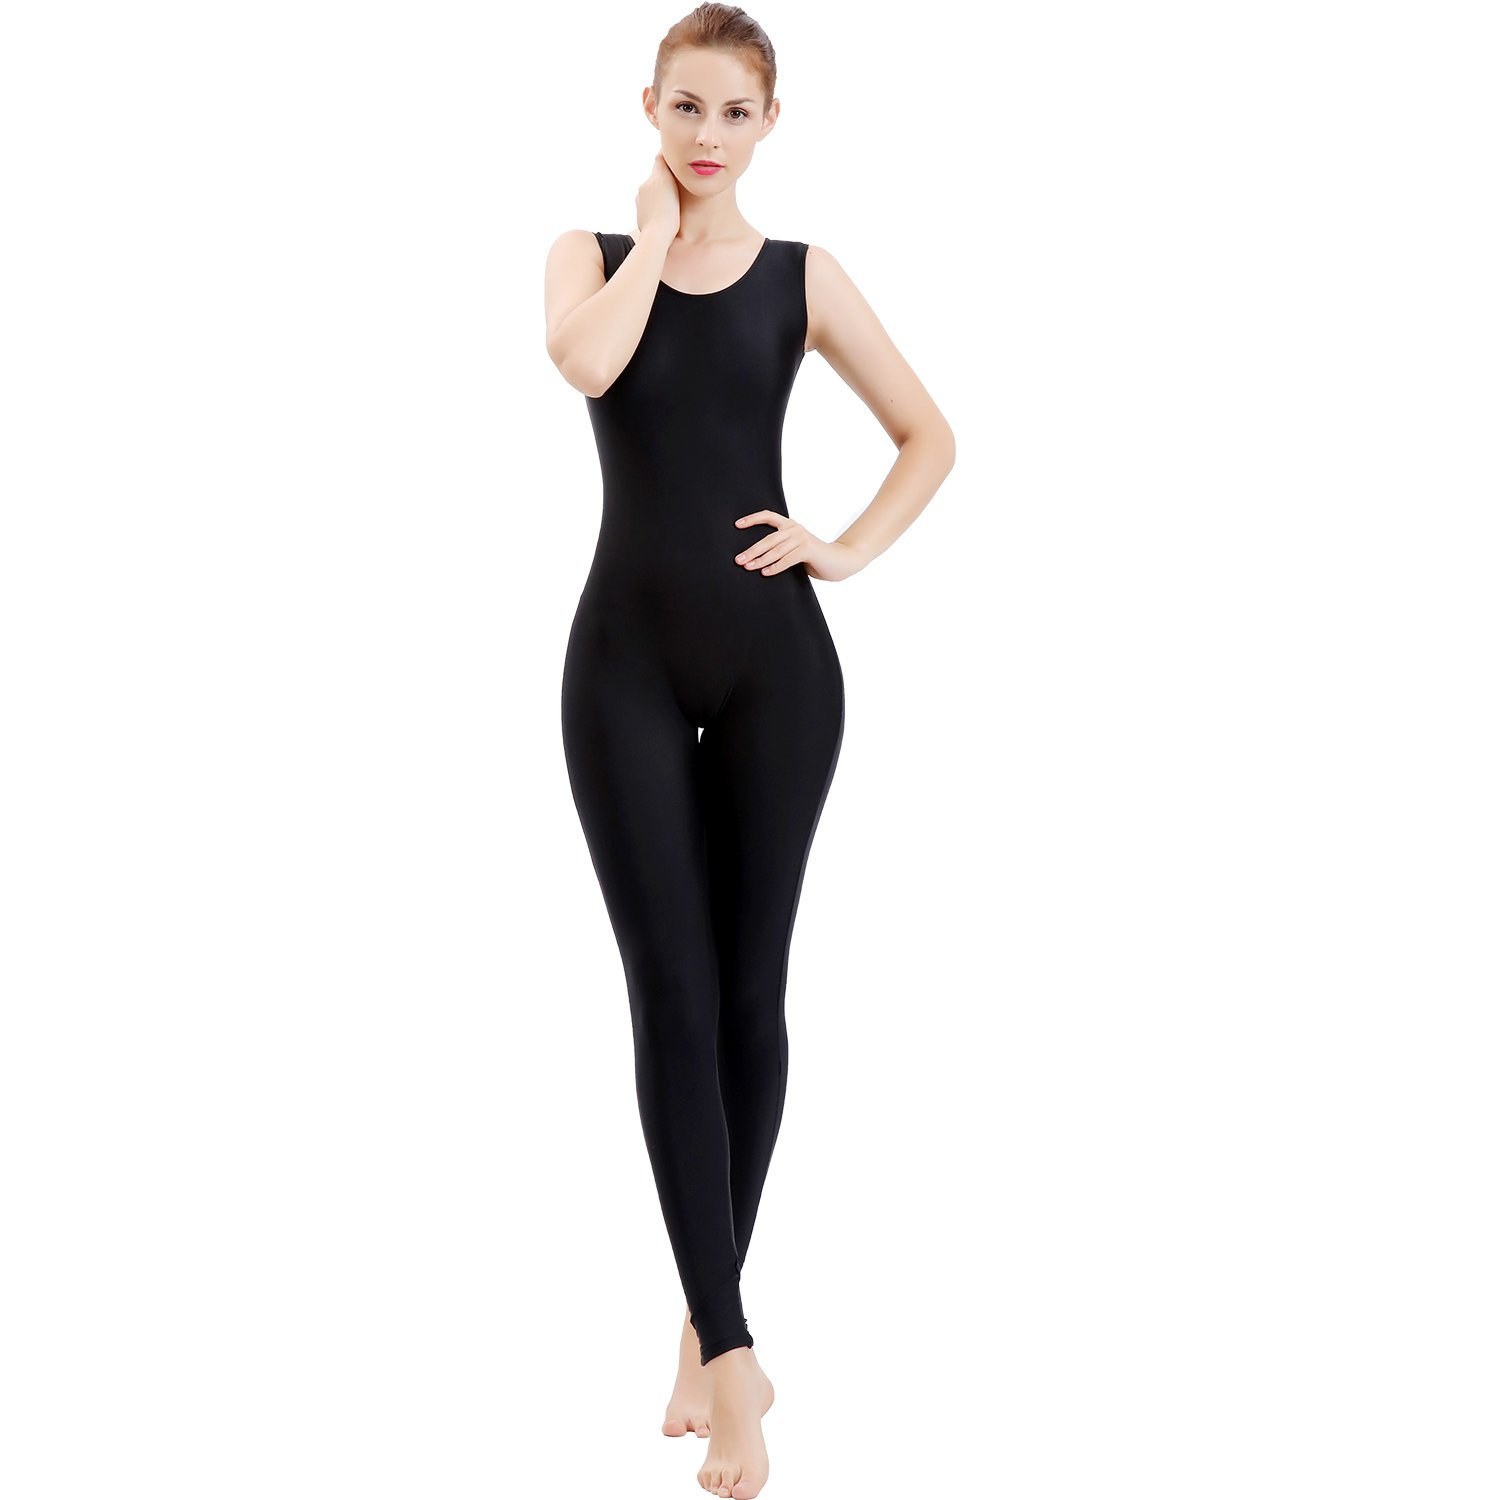 91d5e9d15886 Amazon.com  Gaibest Women Lycra Spandex Sleeveless Tank Dance Unitard  Bodysuit  Clothing